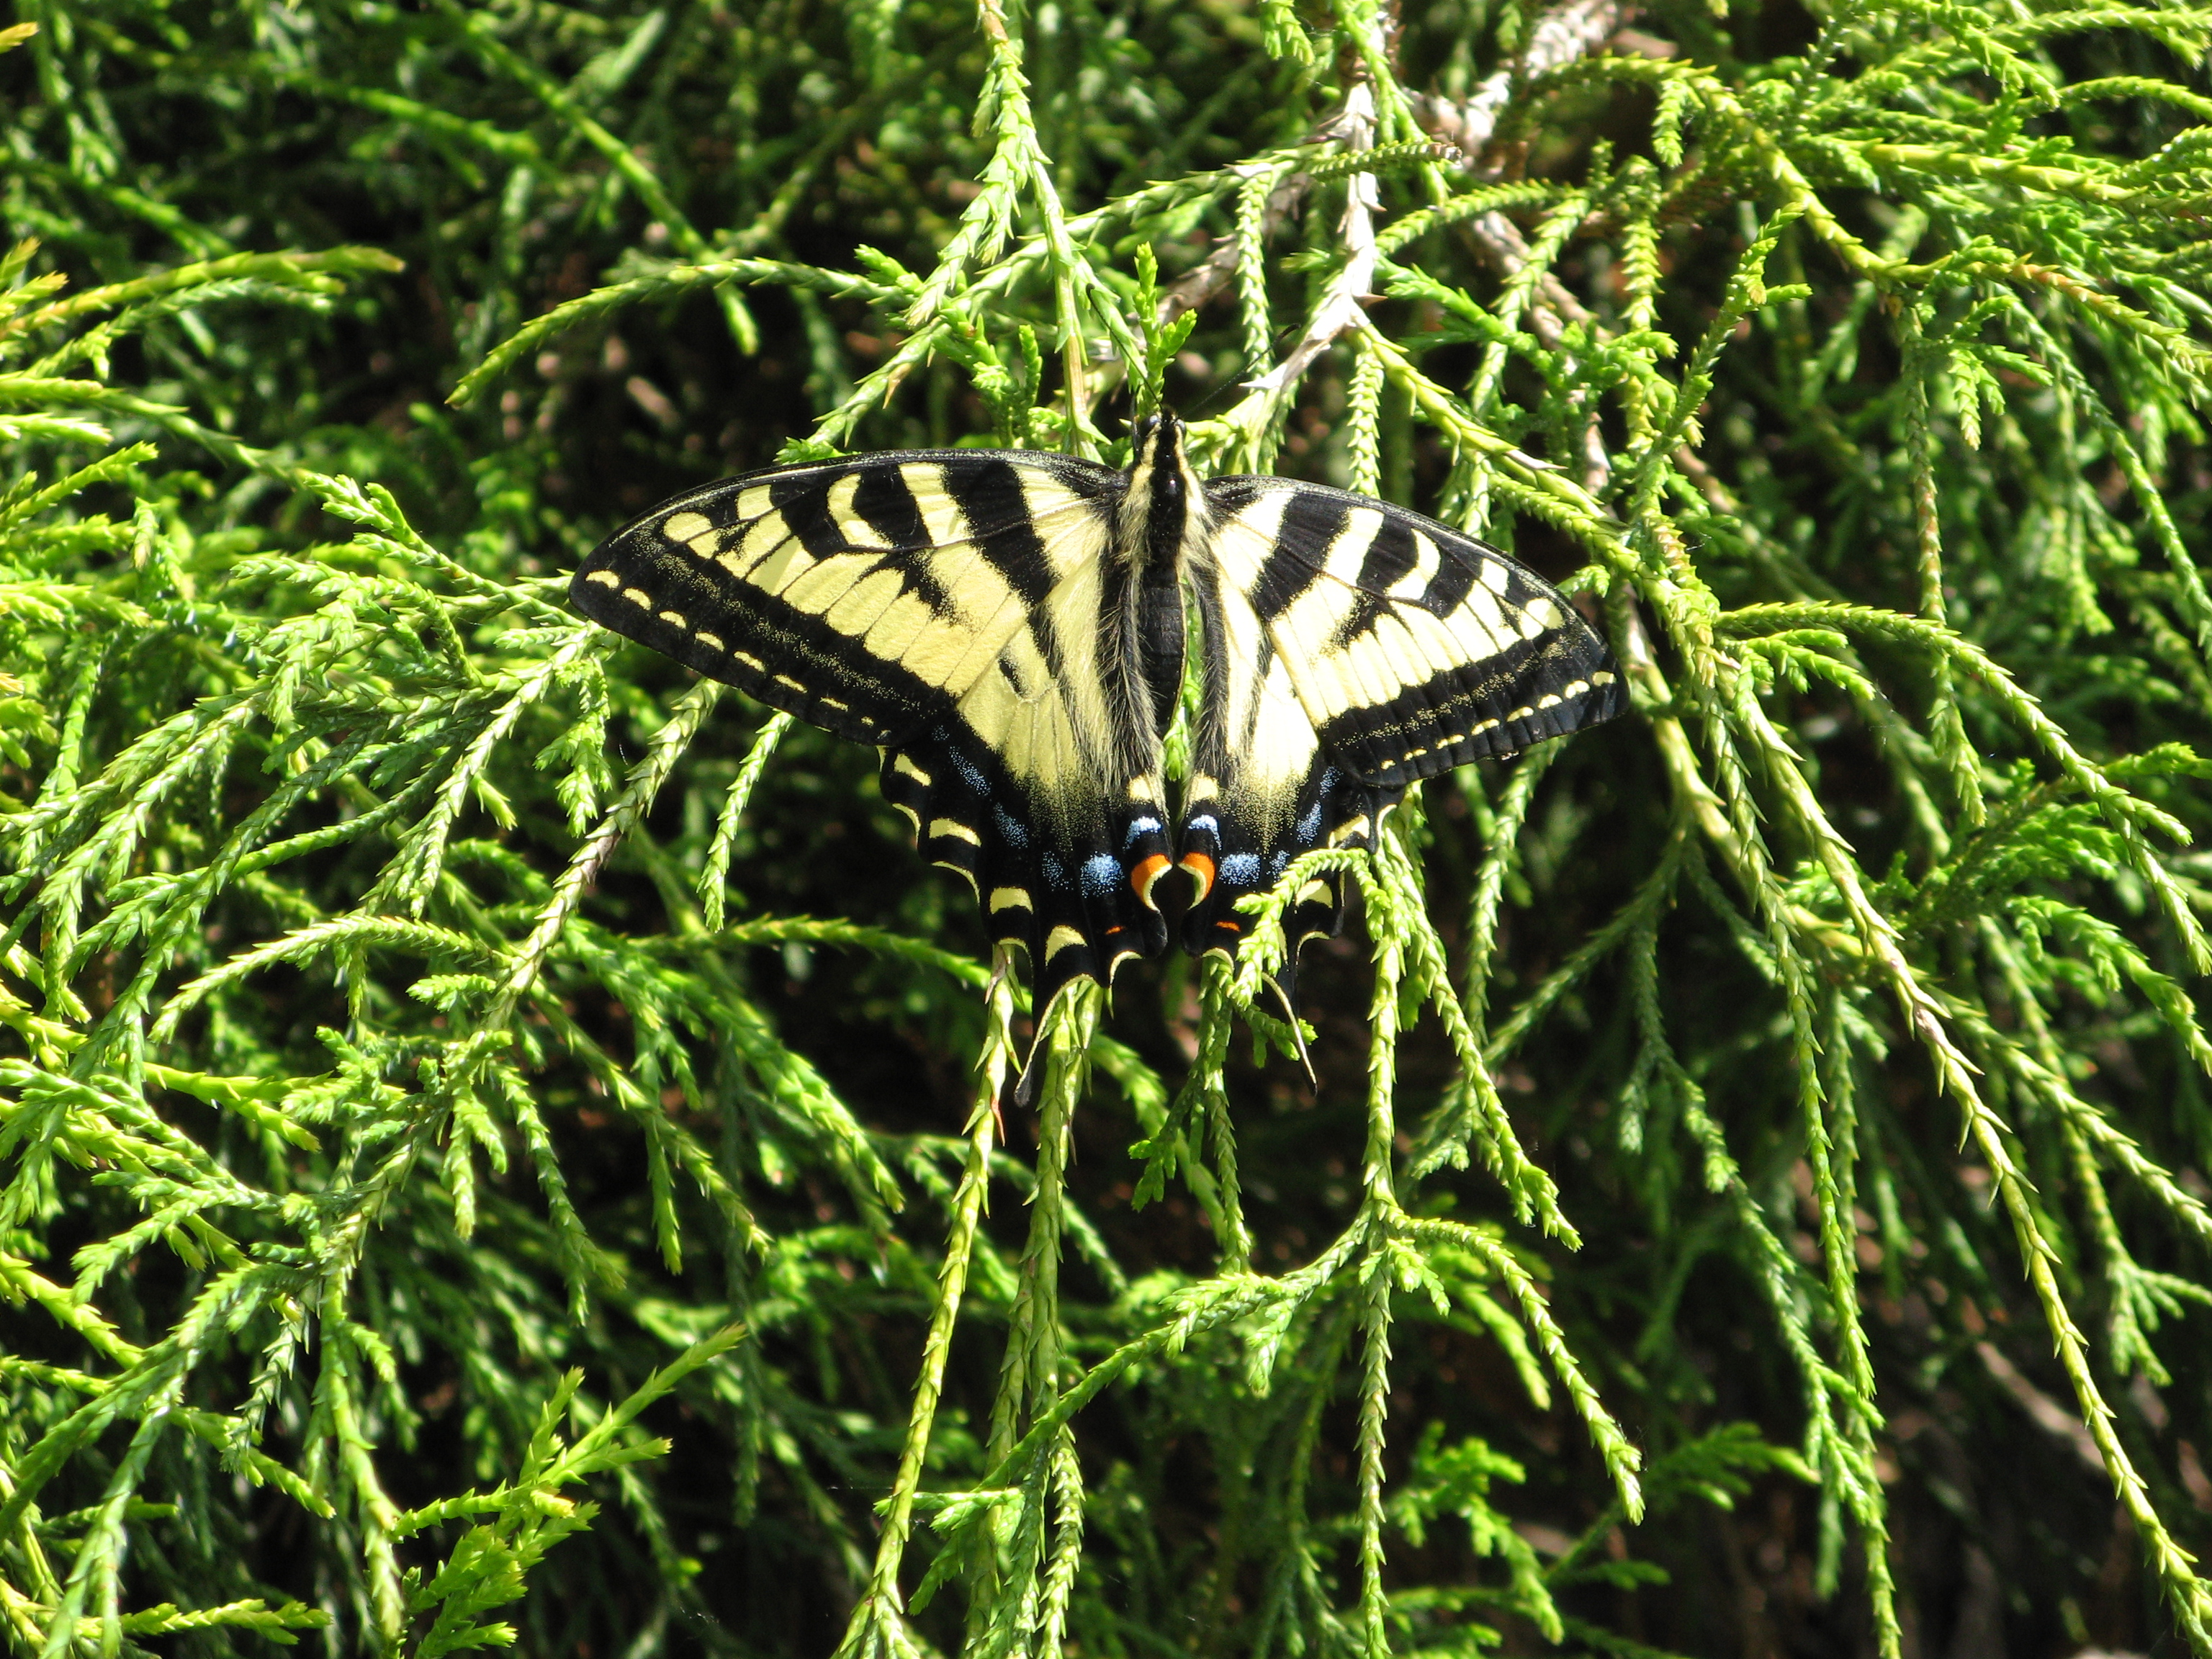 The Western Tiger Swallowtail Butterfly